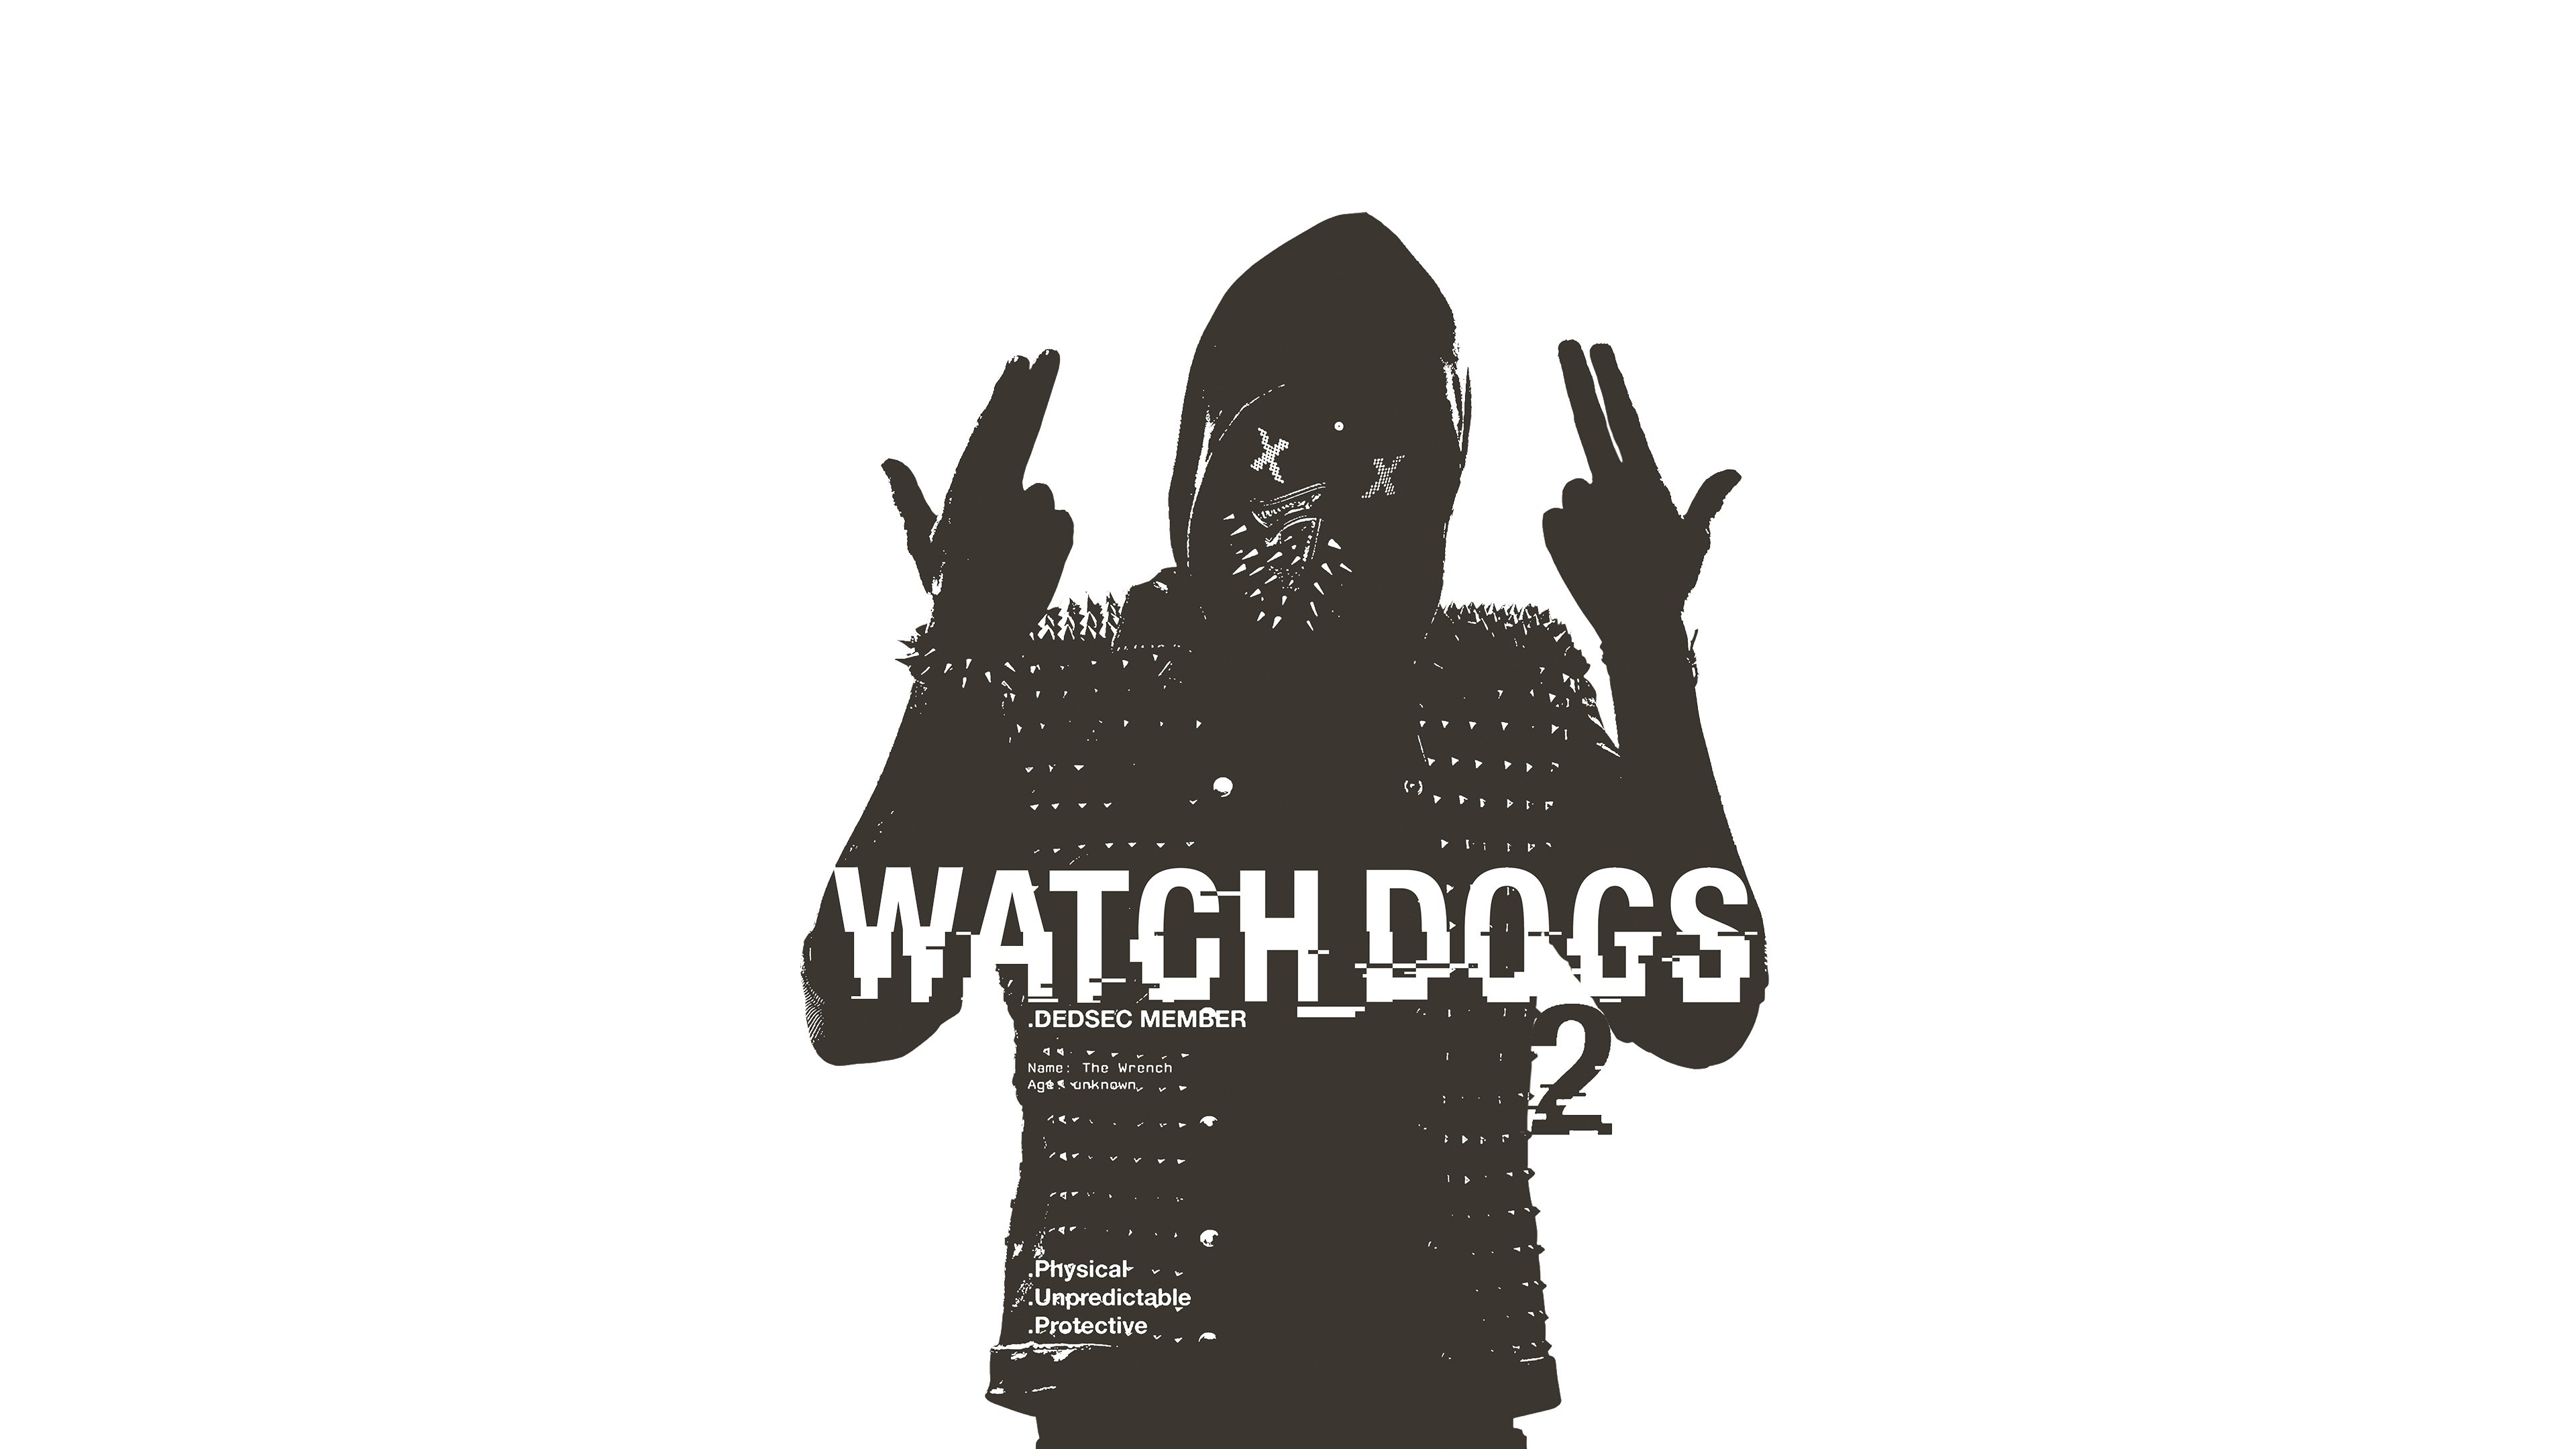 Watch Dogs Ubisoft Watch Dogs 2 Wallpapers Hd Desktop And